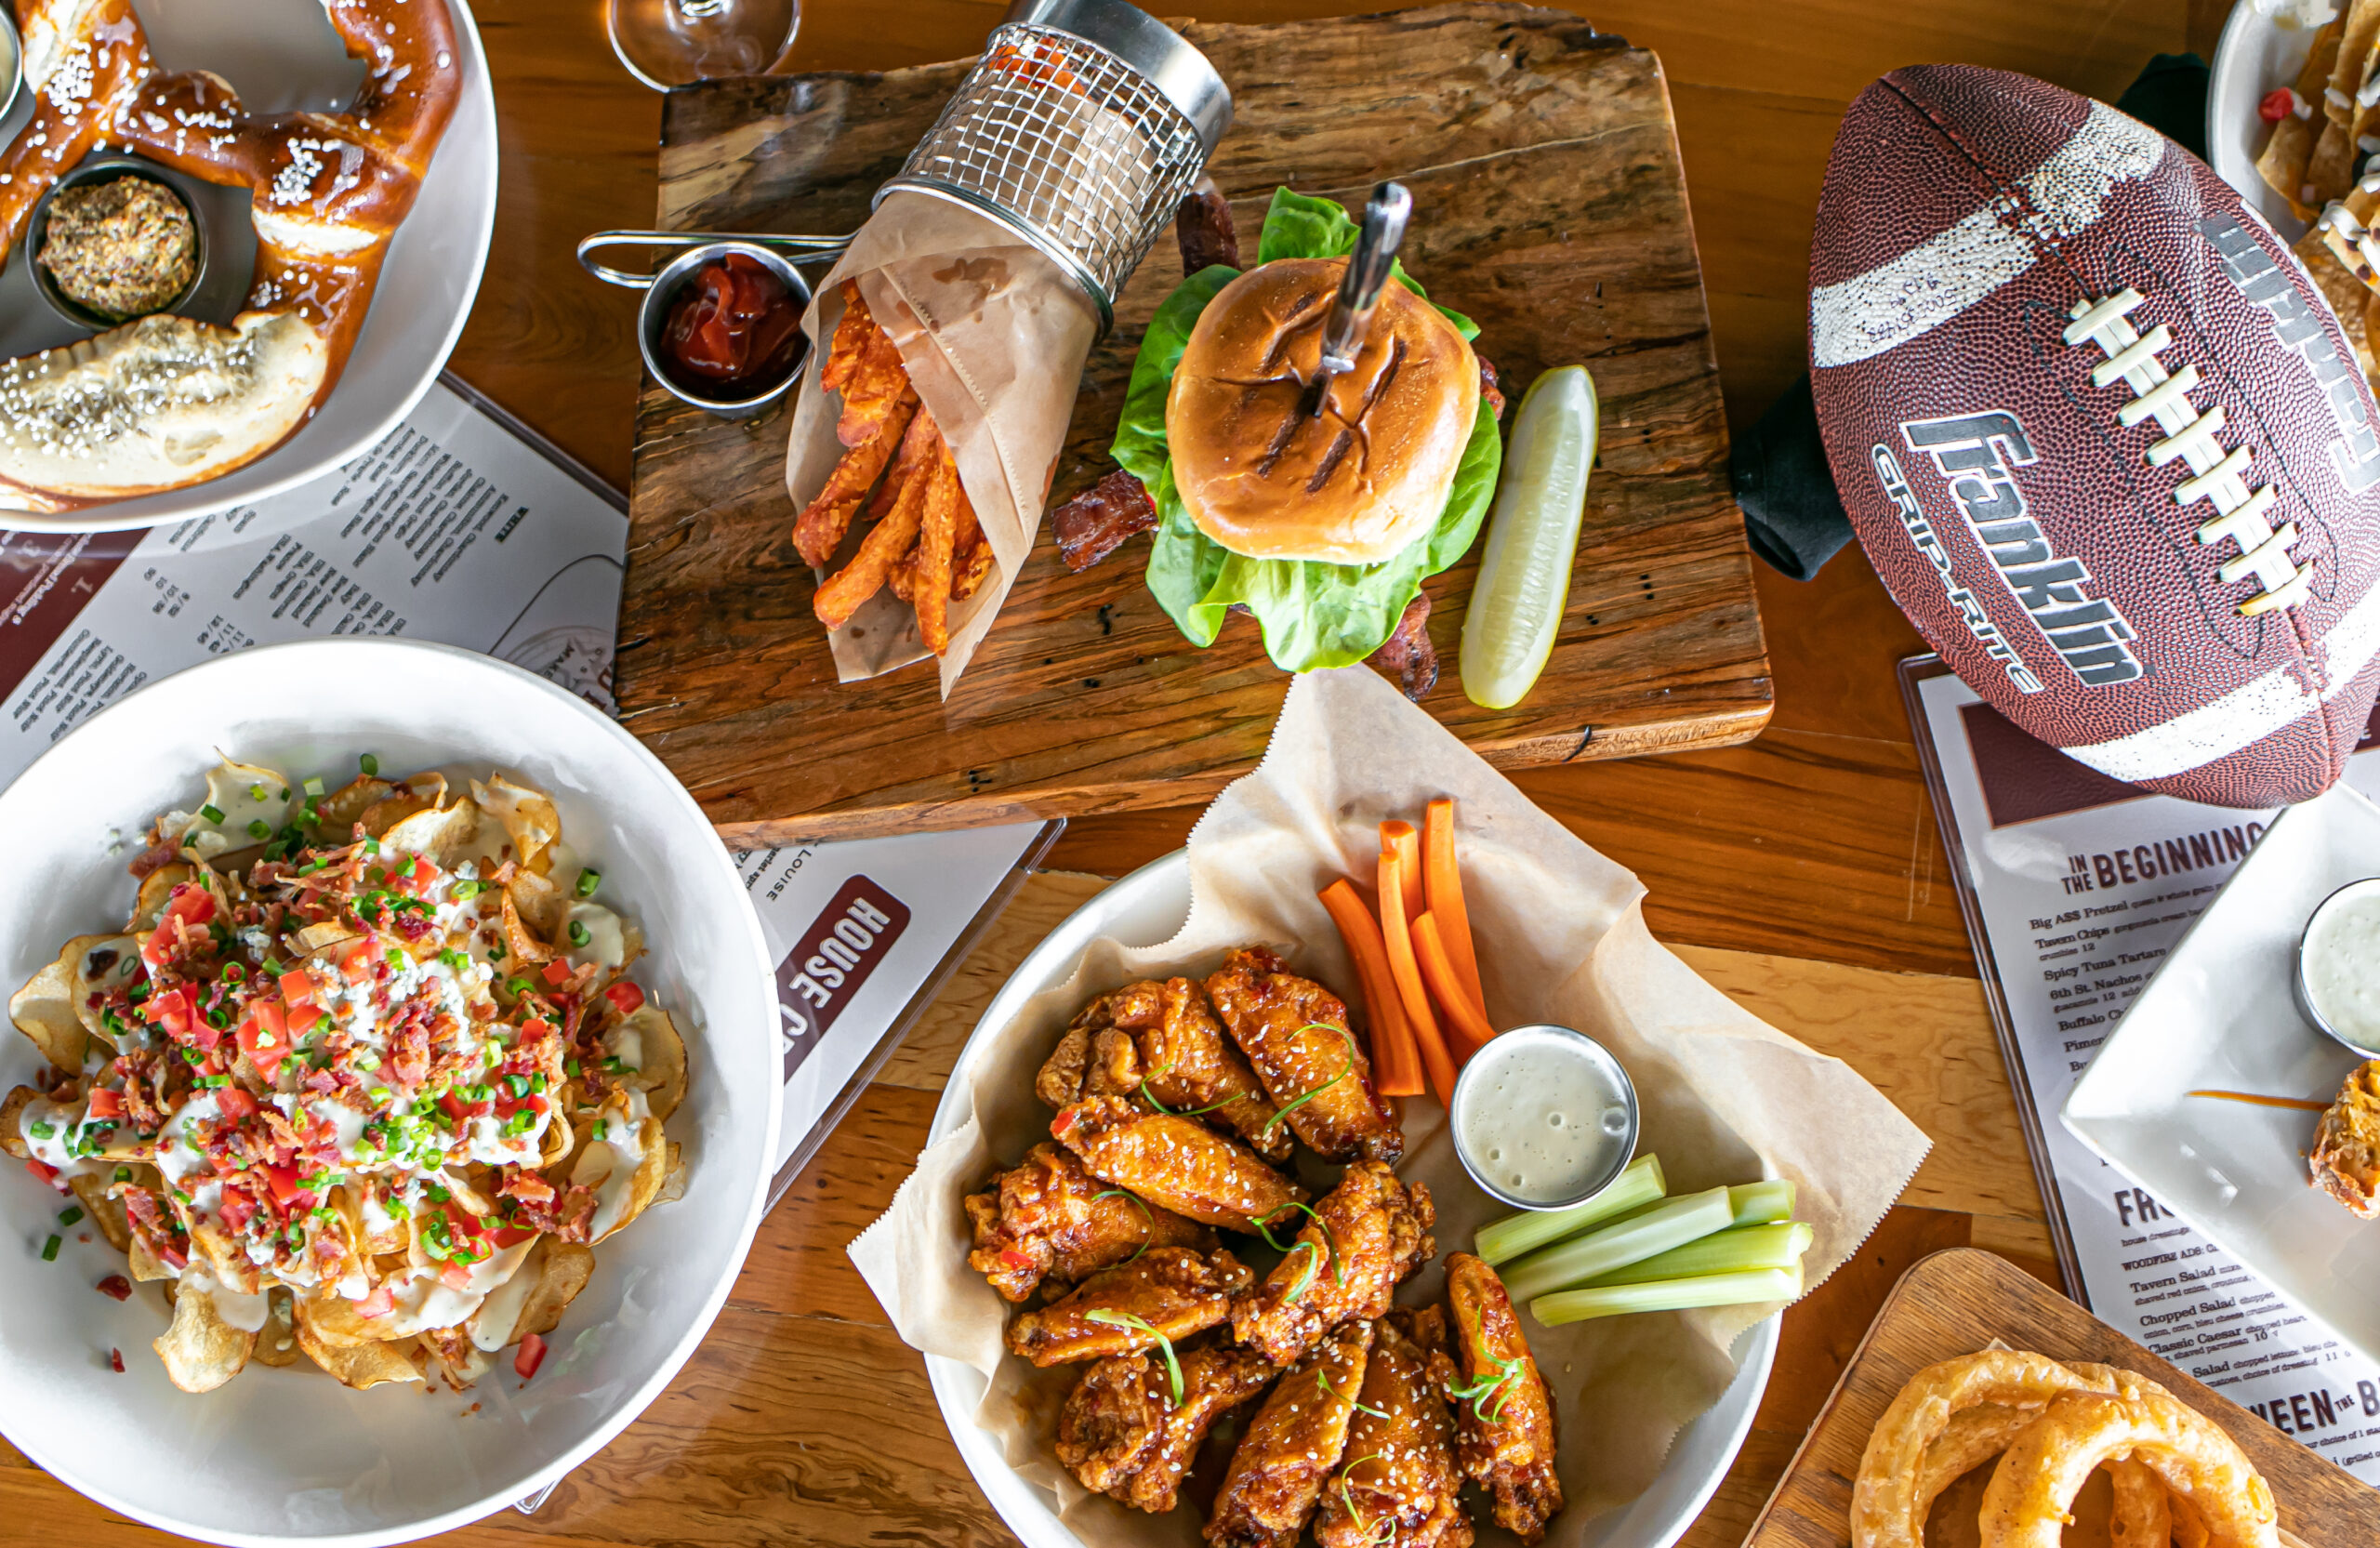 Football at McCray's   Lawrenceville, Midtown, Smyrna, East Cobb